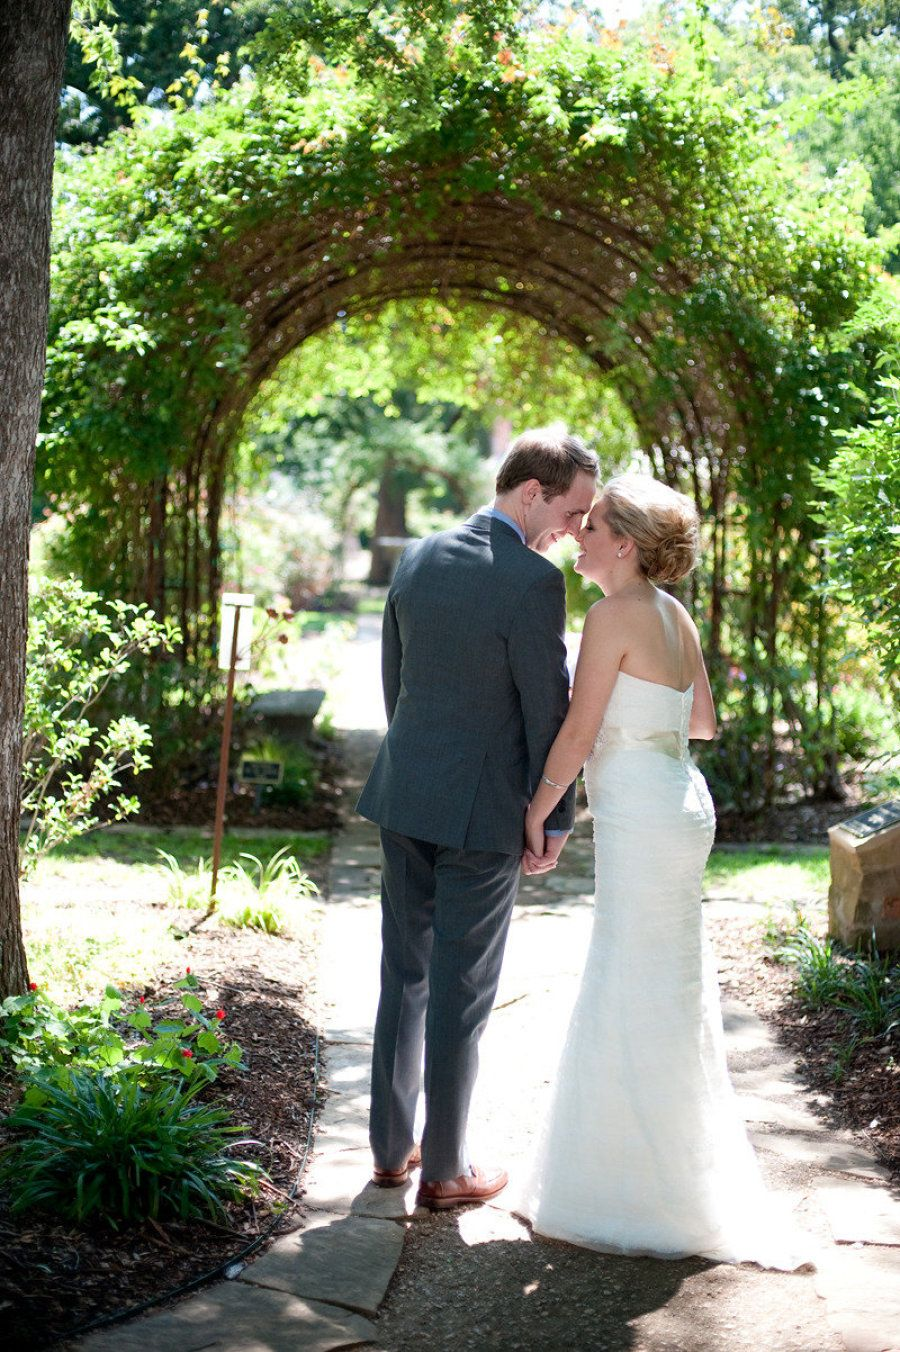 outdoor wedding venues dfw texas%0A Farmers Branch Historical Park  Dallas Wedding Venues Please contact The  Elegant Side event planning ssweddings